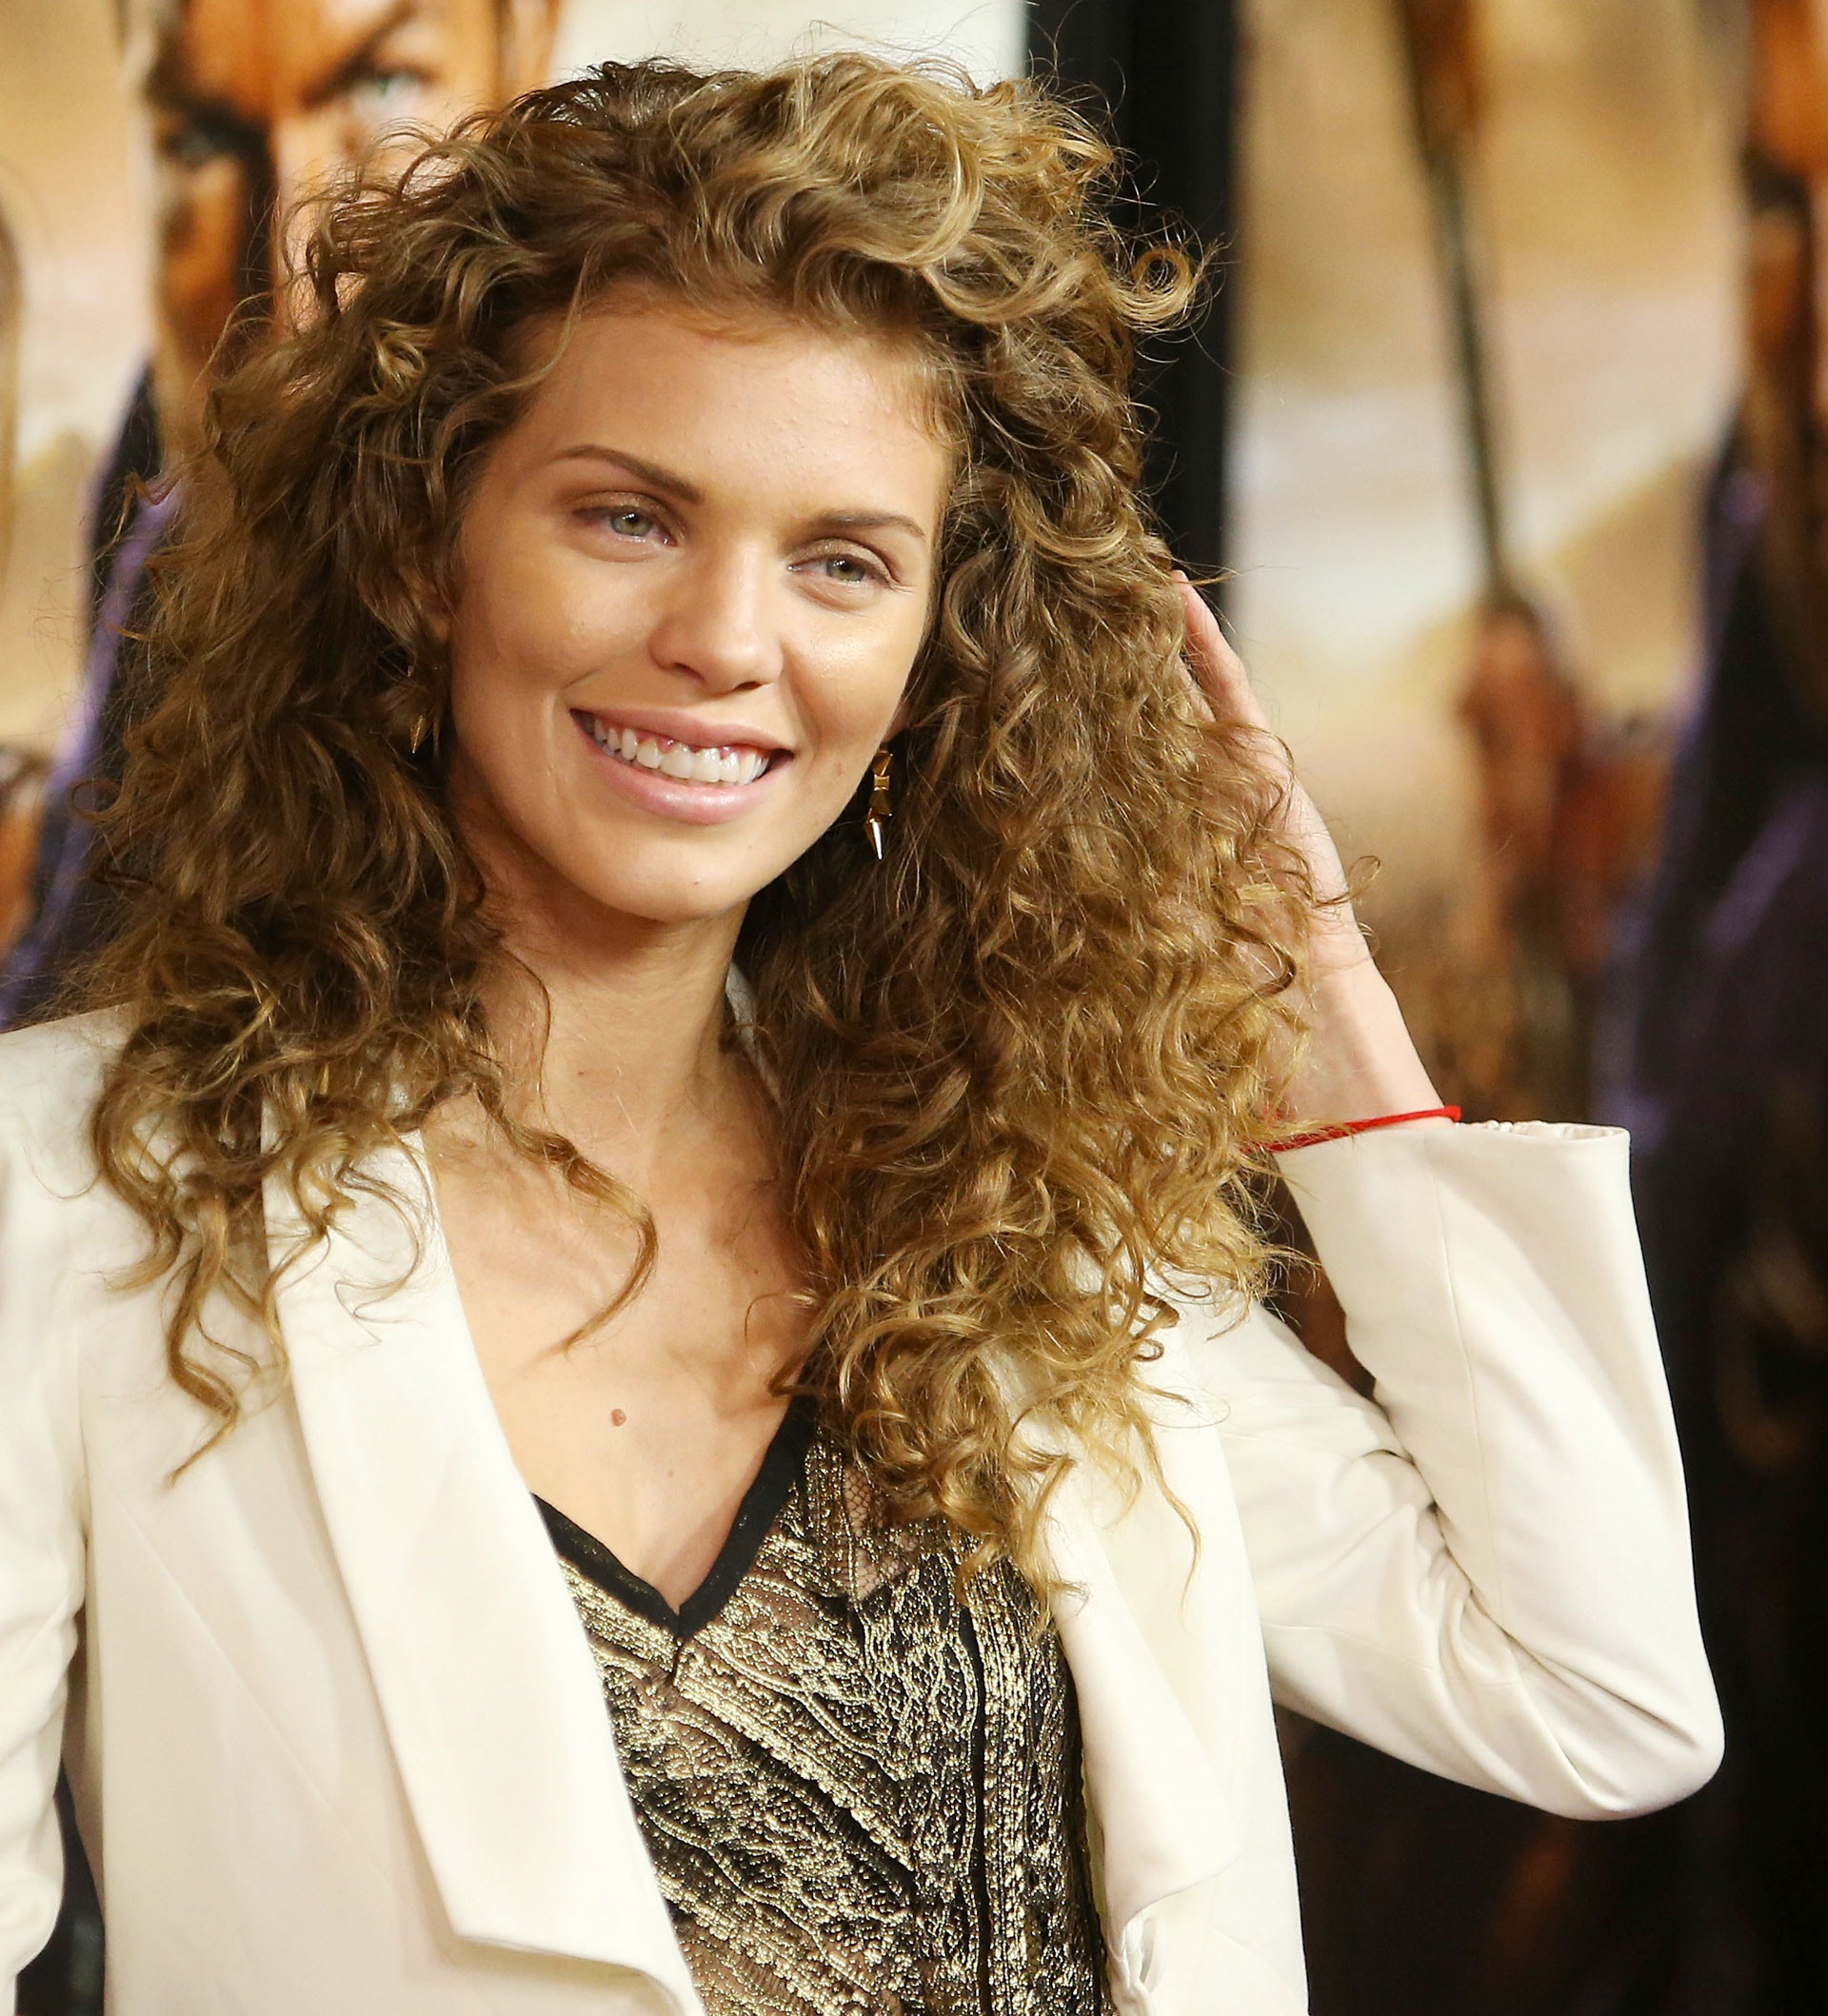 Best ideas about Easy Hairstyles For Thick Curly Hair . Save or Pin Easy Hairstyles for Thick Curly Hair Now.